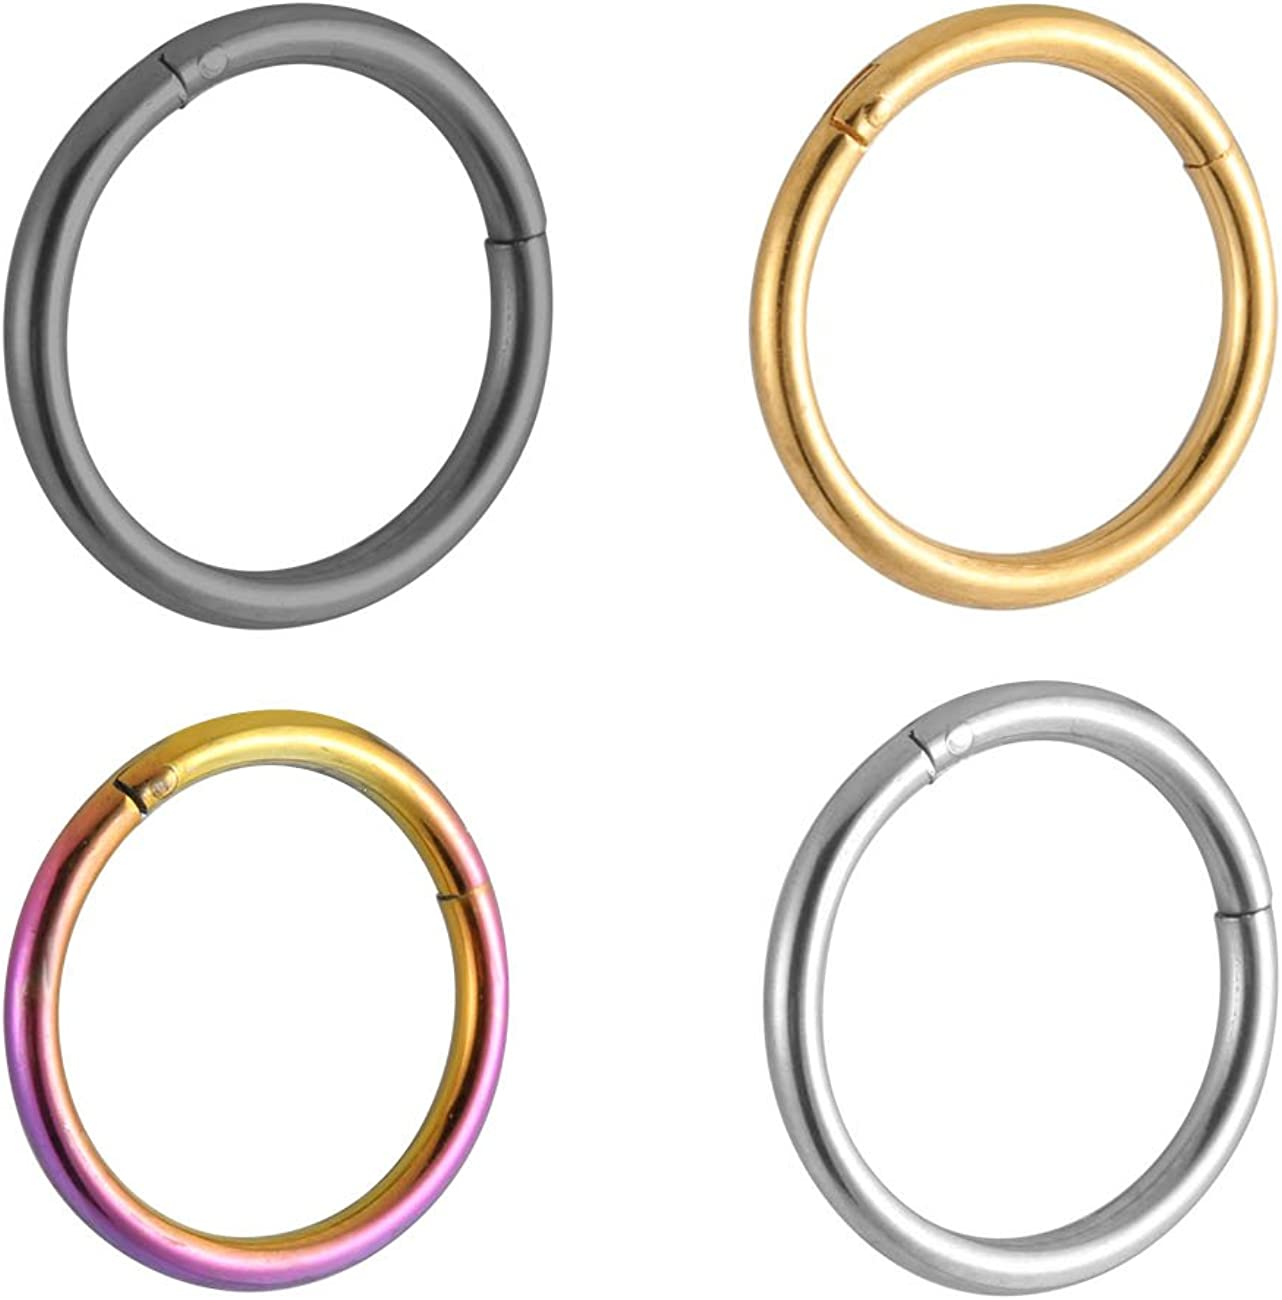 Amazon Com Yougking 16g 4 Pcs Stainless Steel Septum Piercing Nose Hoop Clicker Ring Nostril Lip And Ear Piercings Length 3 8 10mm Jewelry